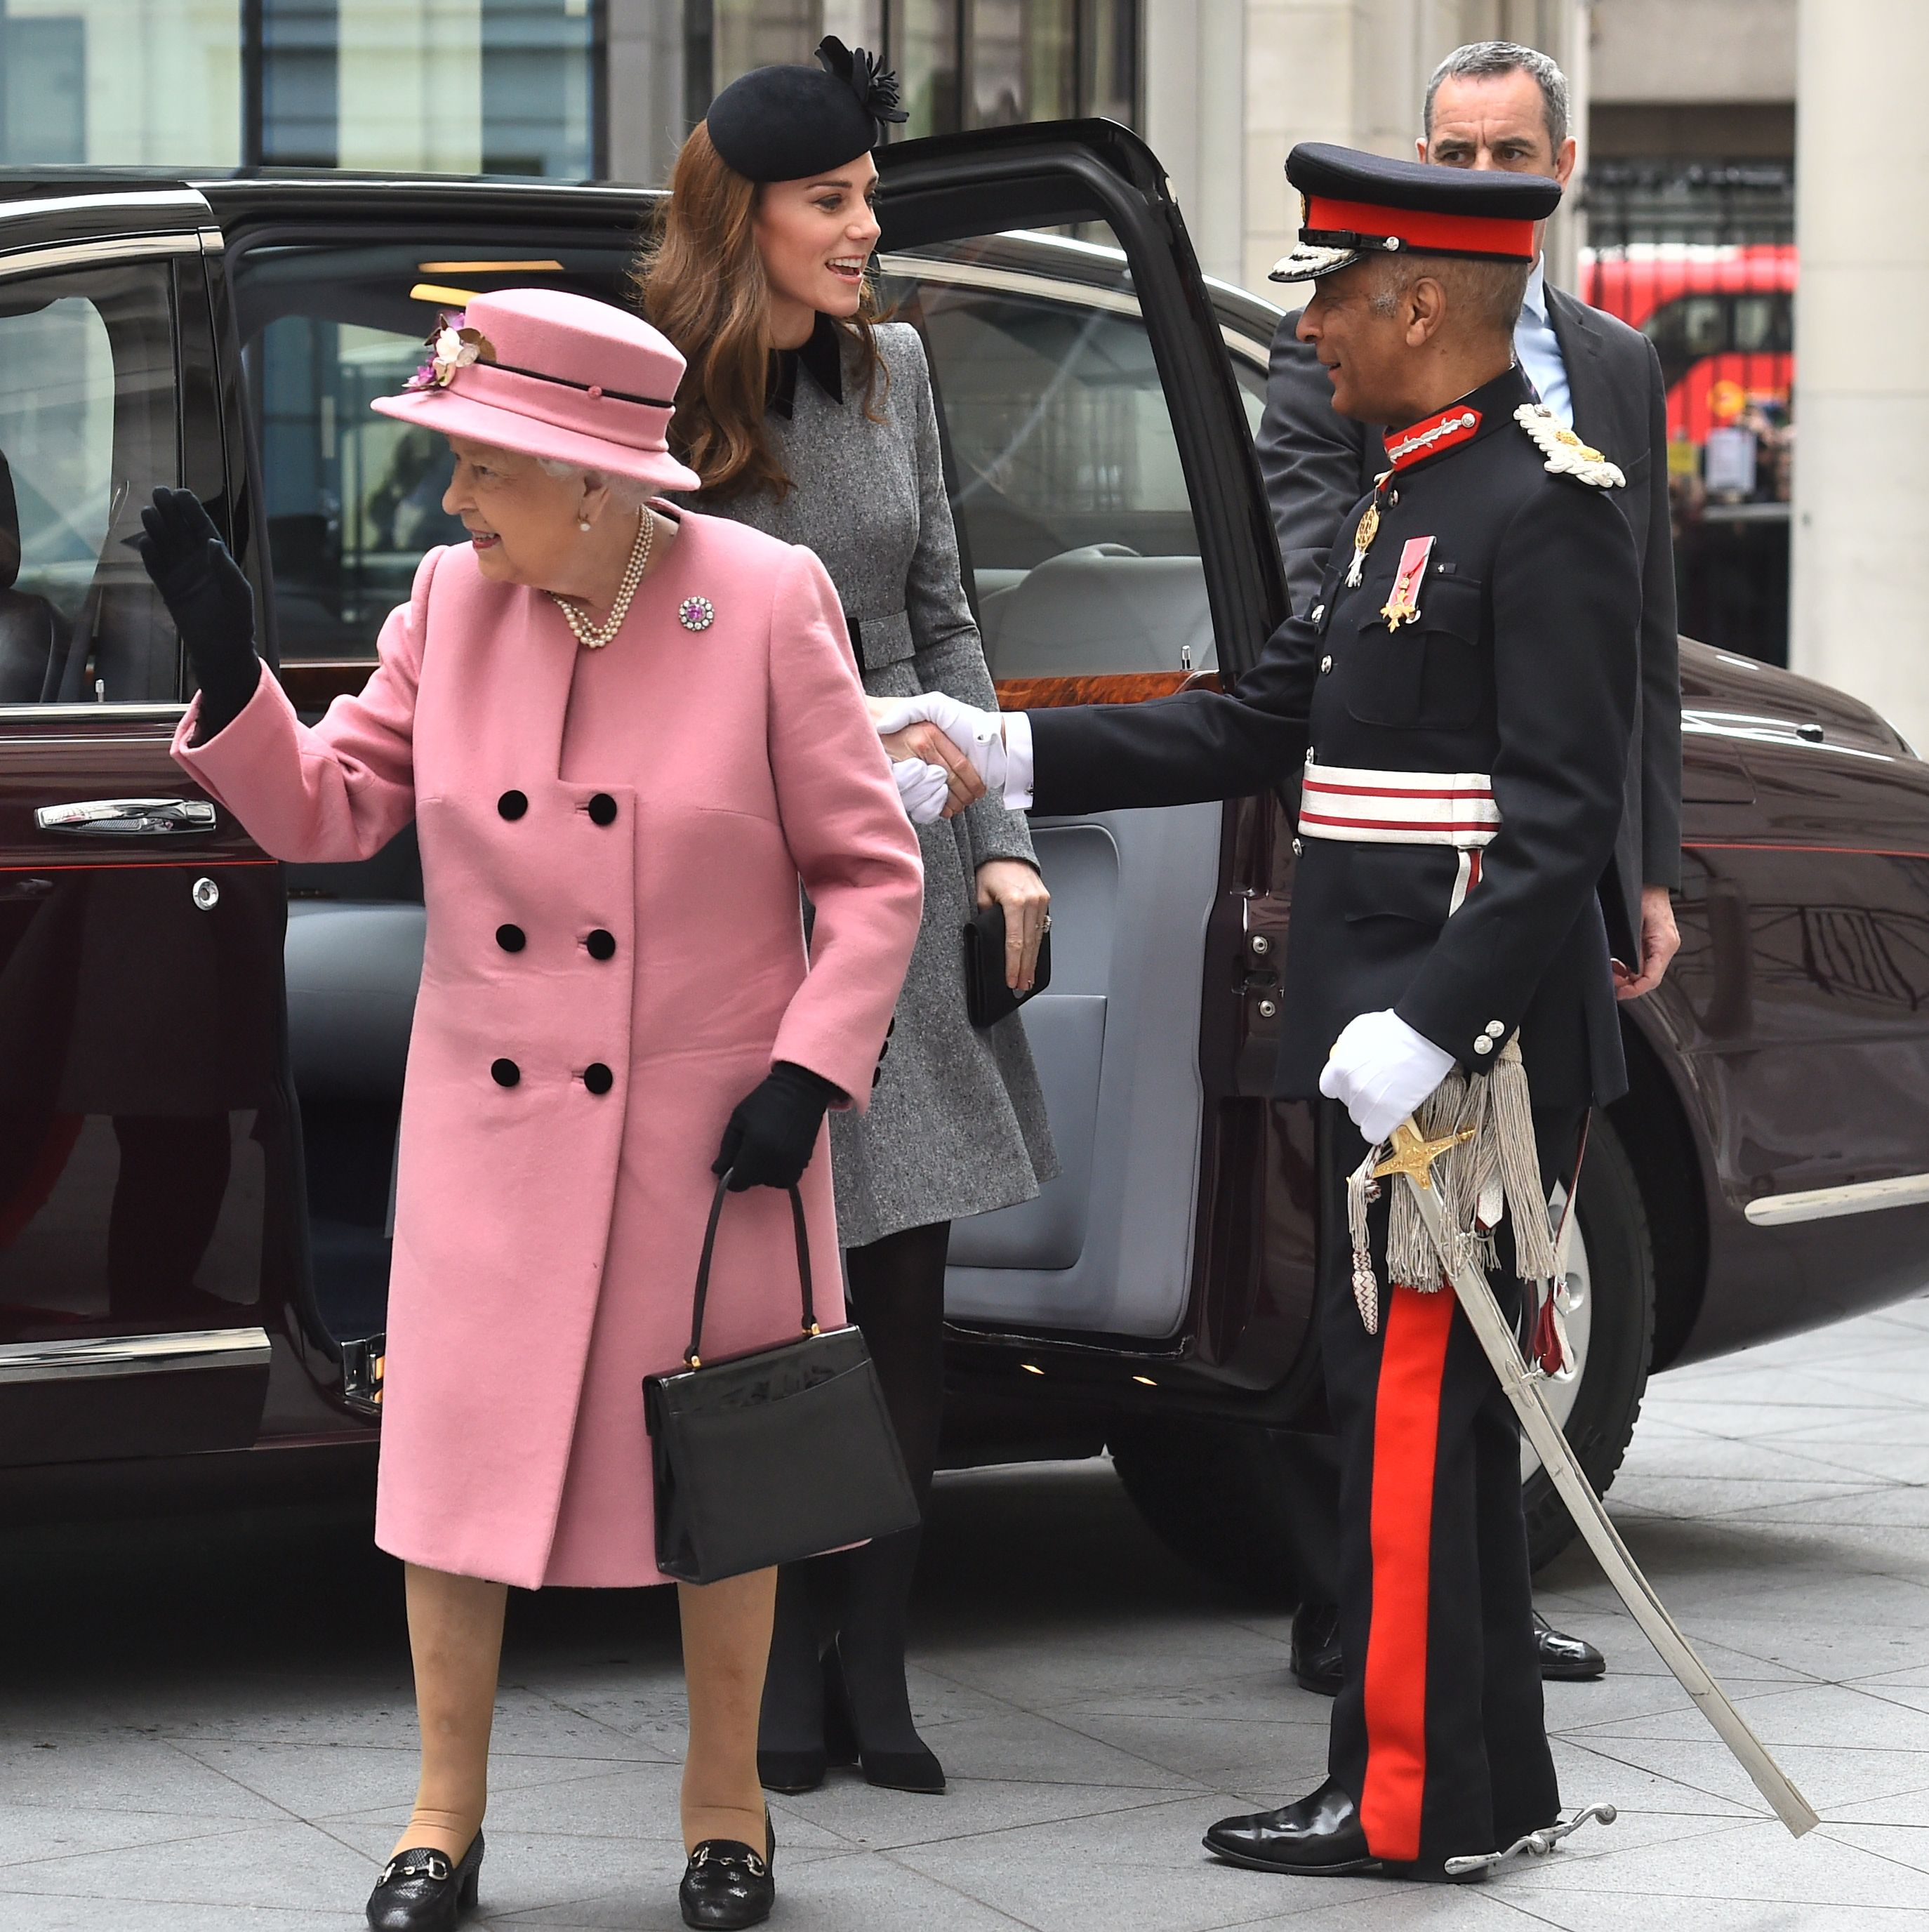 Kate Middleton Wore a Grey Catherine Walker Dress for Rare Engagement With the Queen at King's College